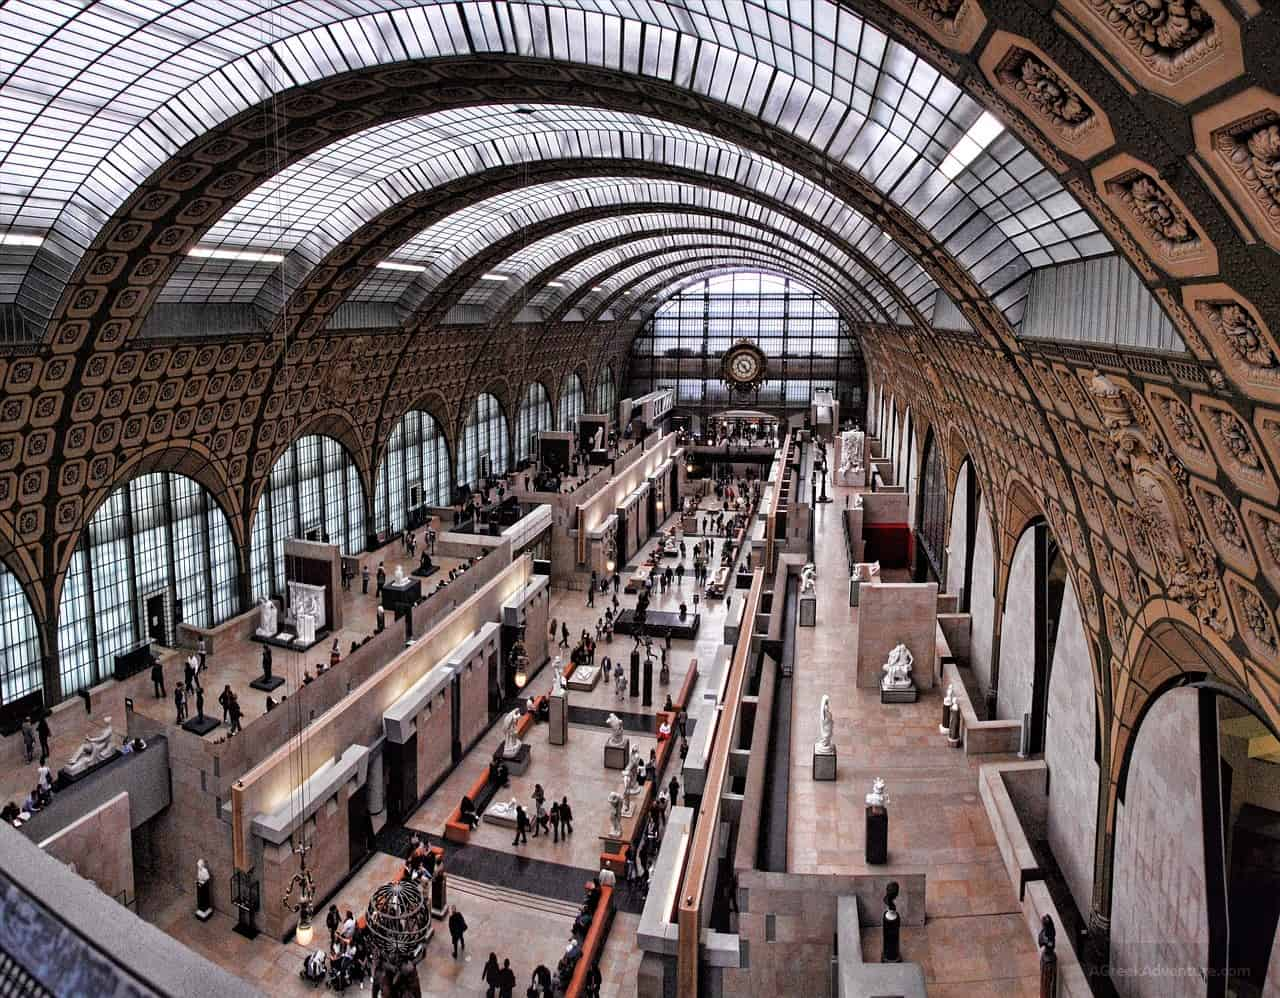 The World's Top Museums According to Tripadvisor